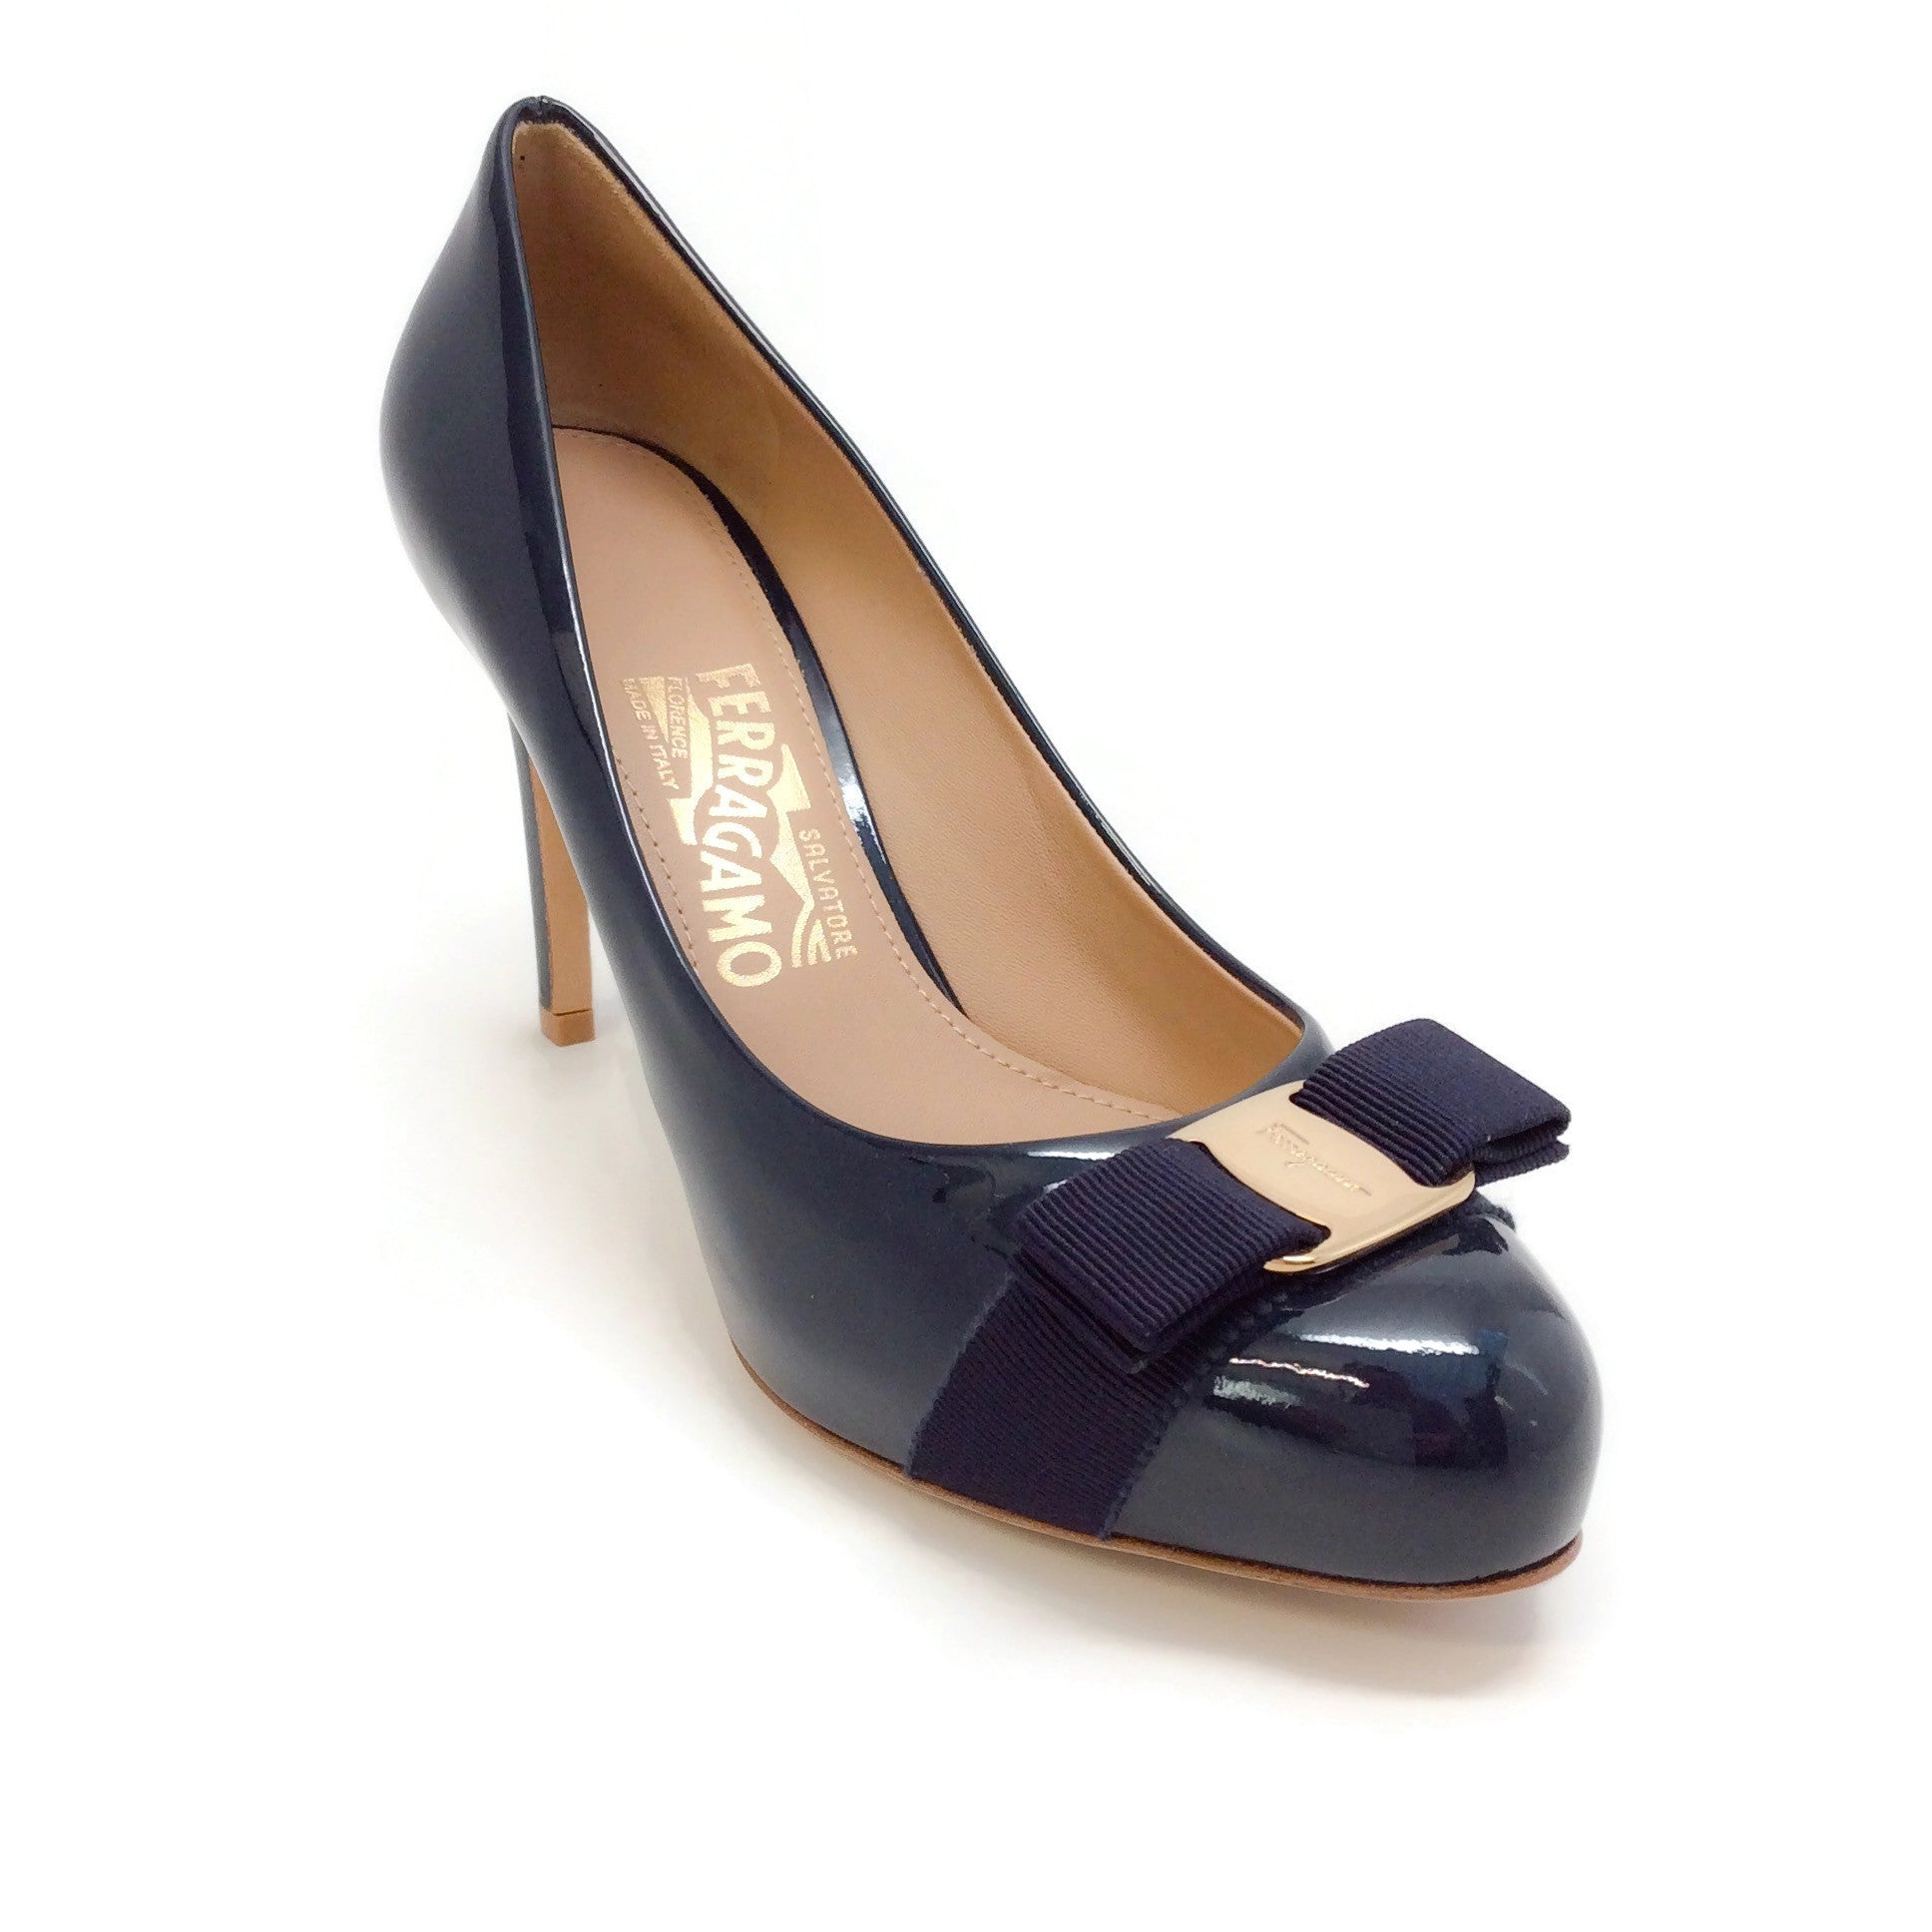 Salvatore Ferragamo Navy Blue Patent Leather Pumps